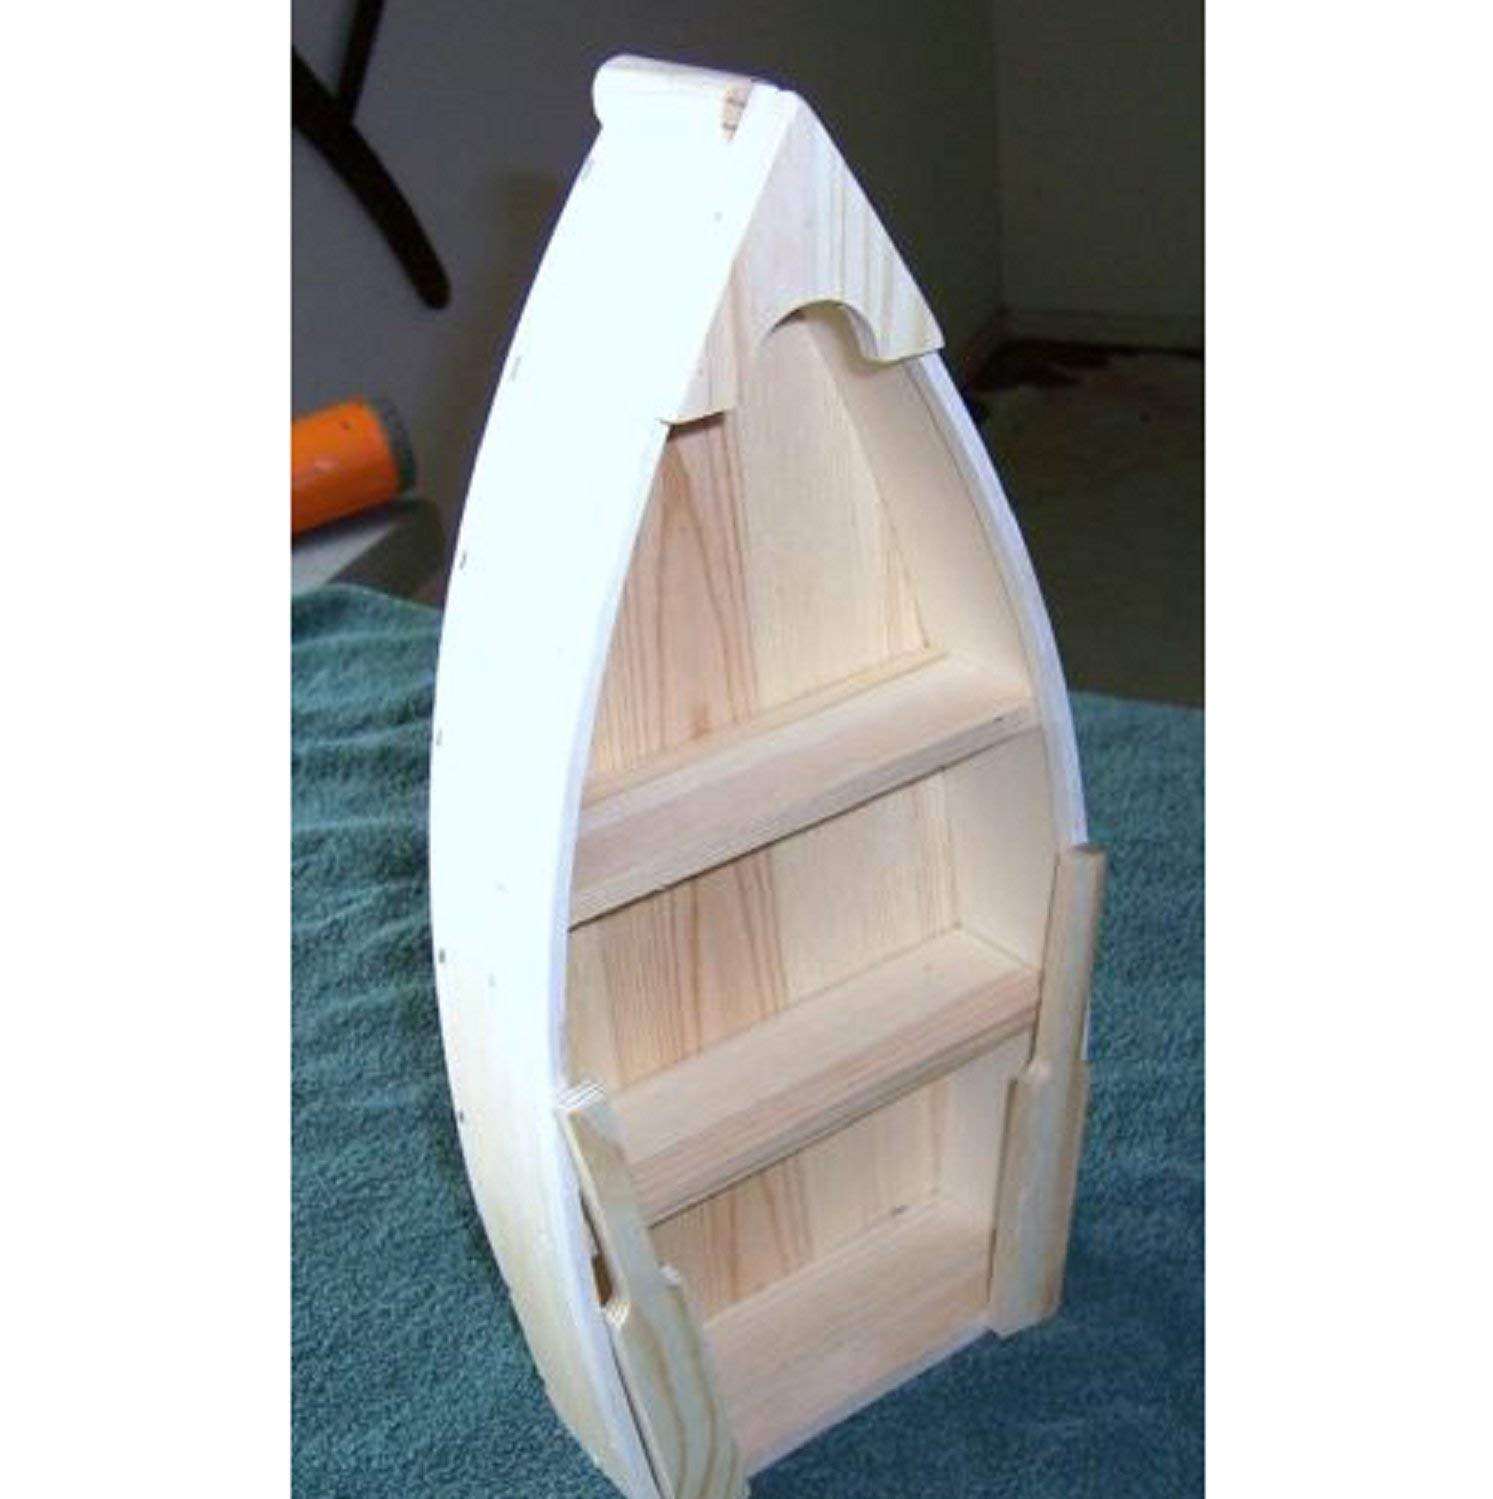 Darice 9154 94 Unfinished Natural Wood Craft Project Wood Boat With Oars 12 Inch Sareg Com